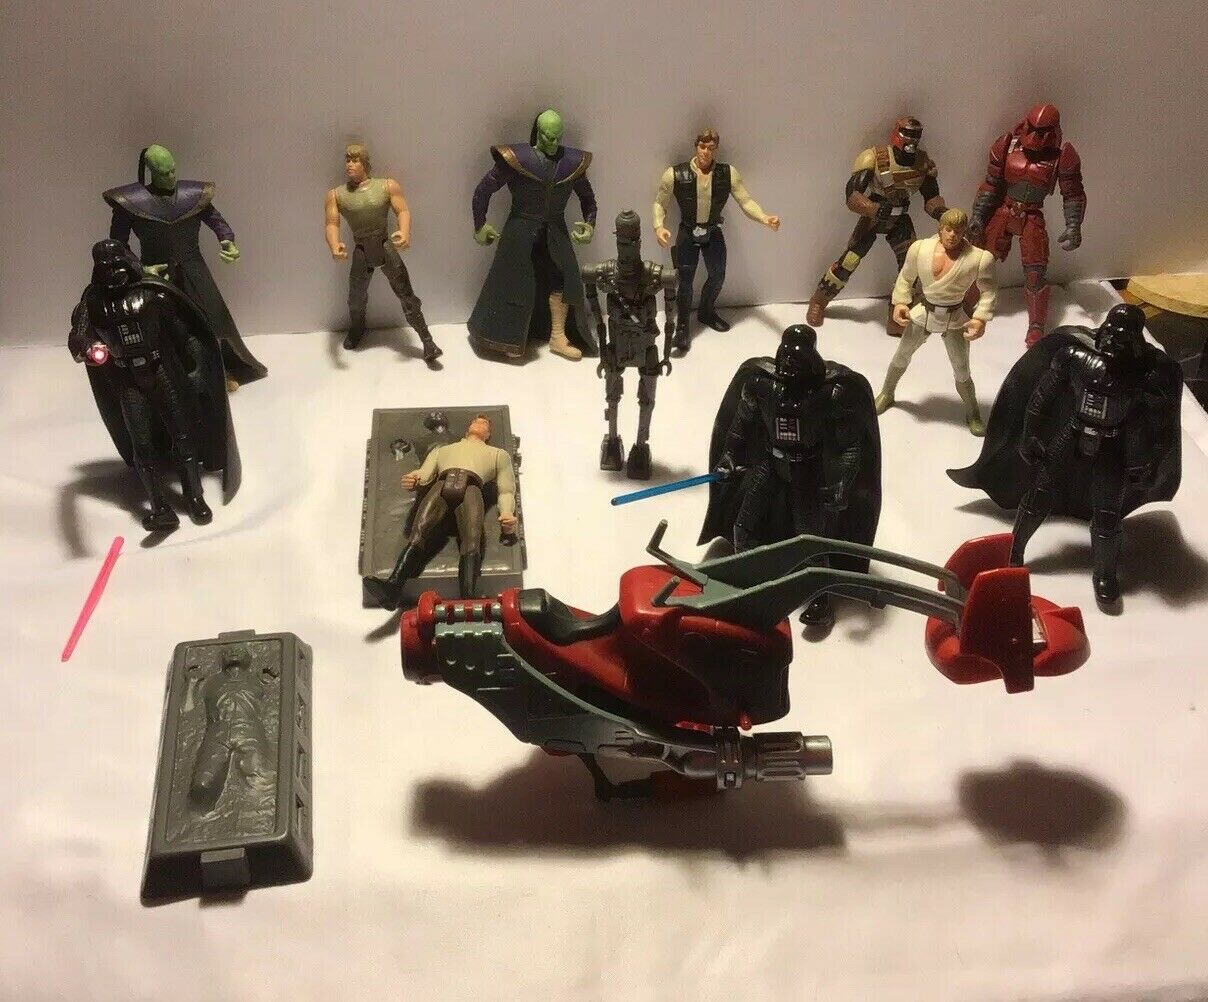 Lot of 12 Star Wars Action Figures And One Speeder Bike Kenner 1996